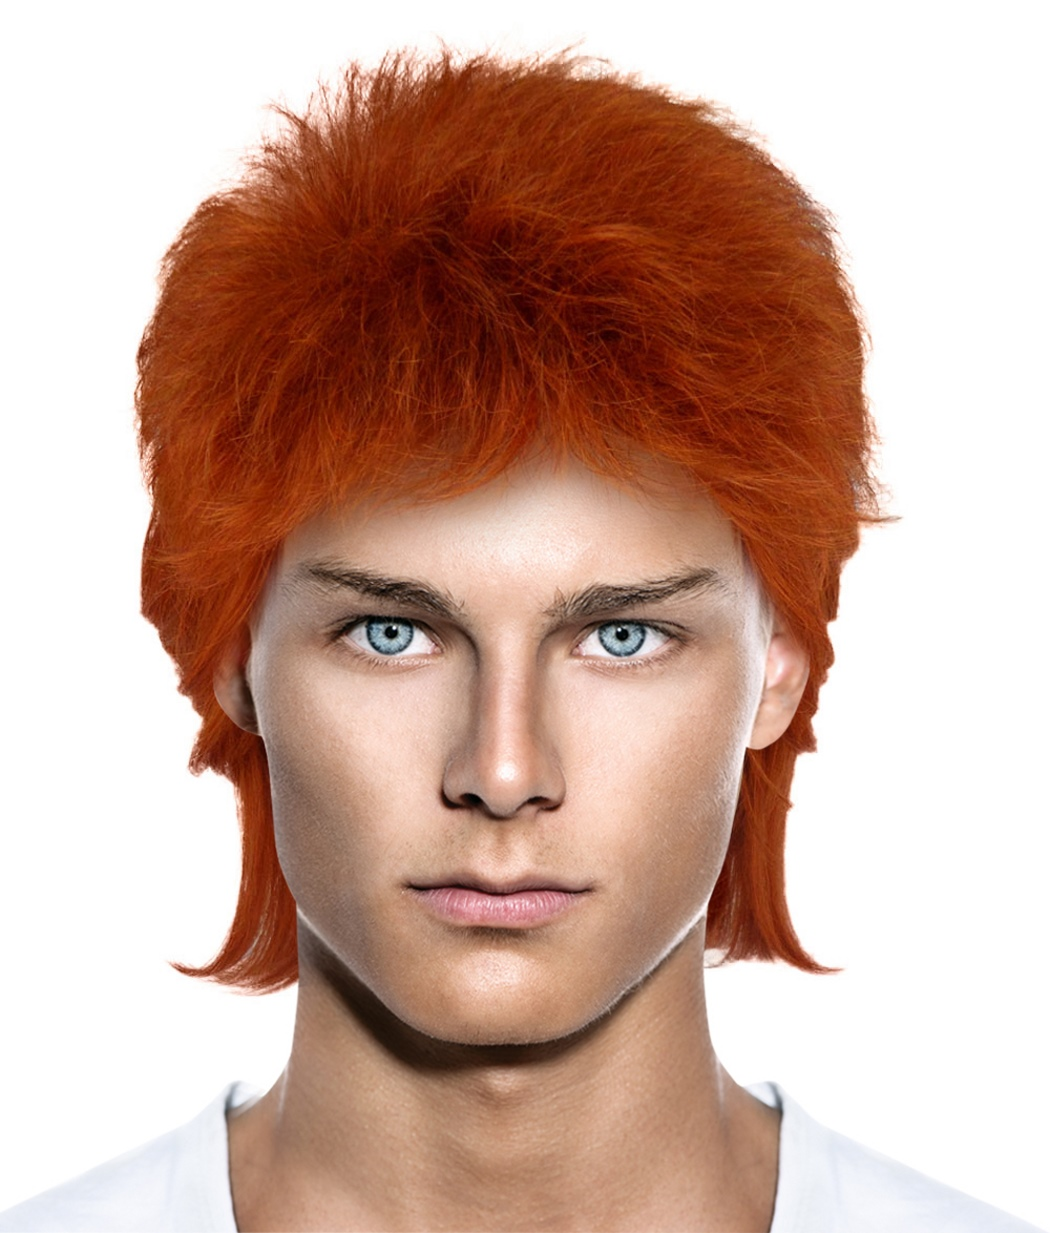 David Bowie Glam Rocker Costume Wig